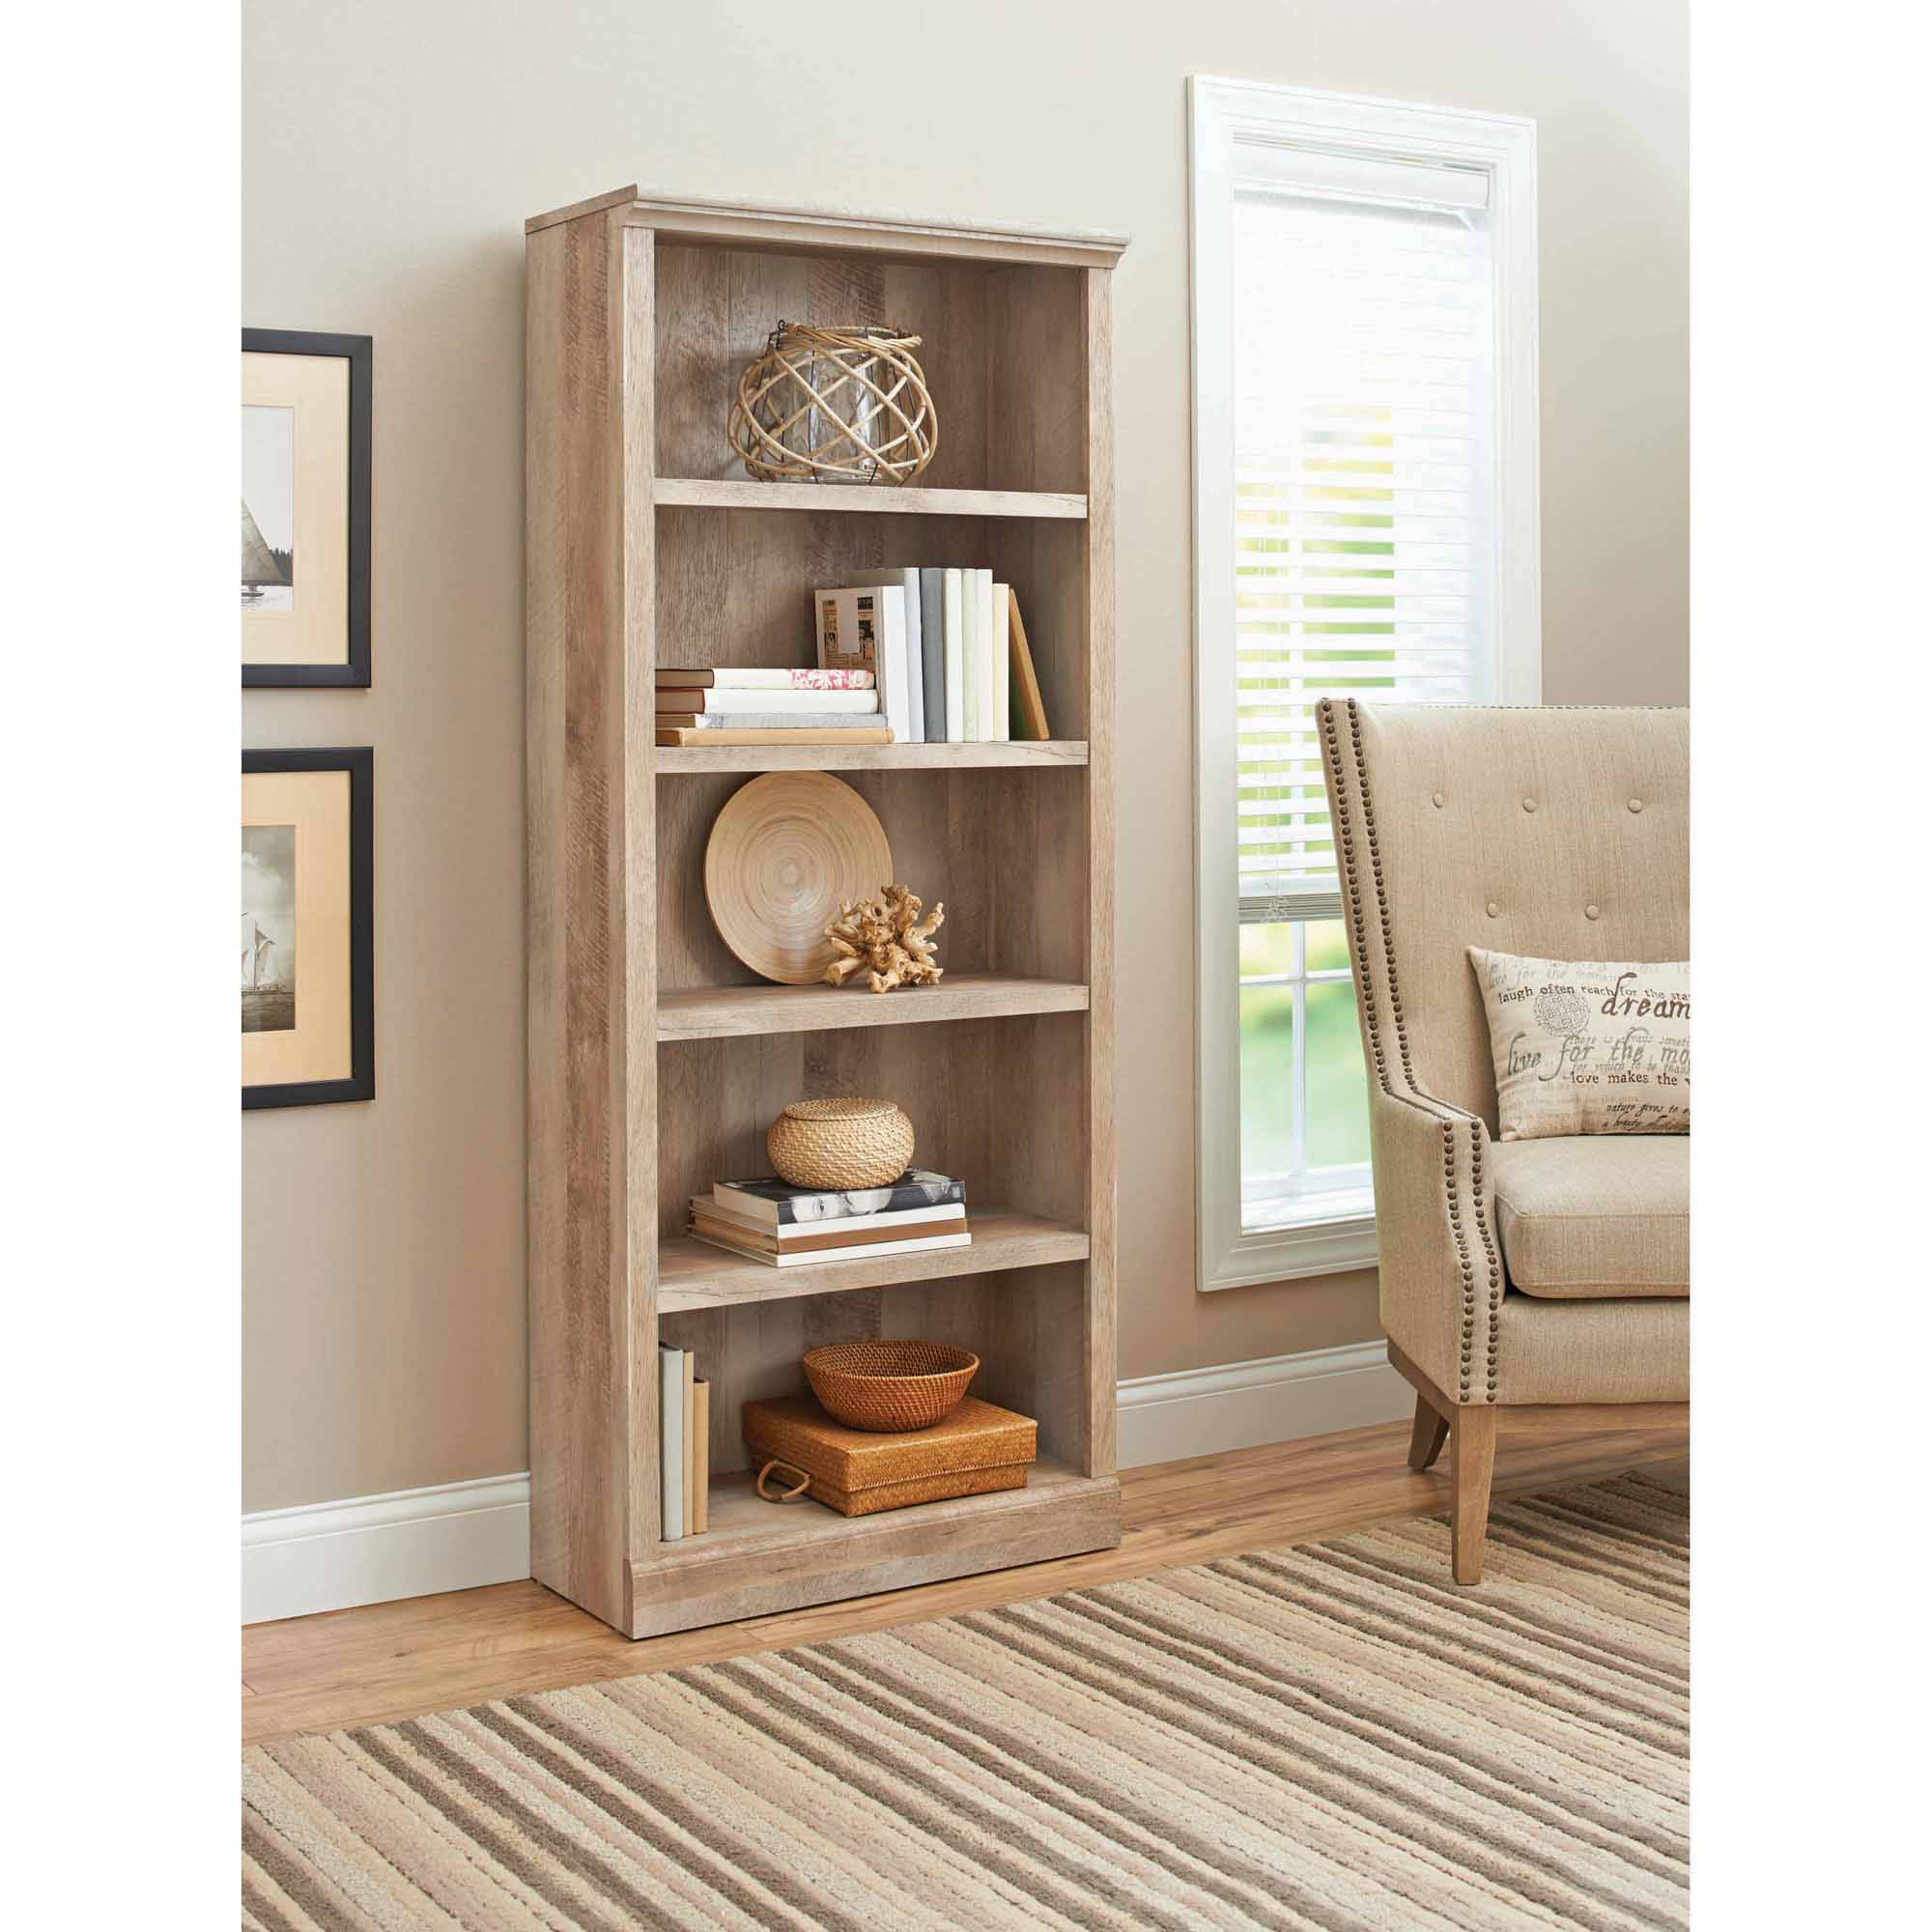 Details About 5 Shelves Wood Bookcase Adjustable Rustic Shelf Storage Tall  Country Bookshelf